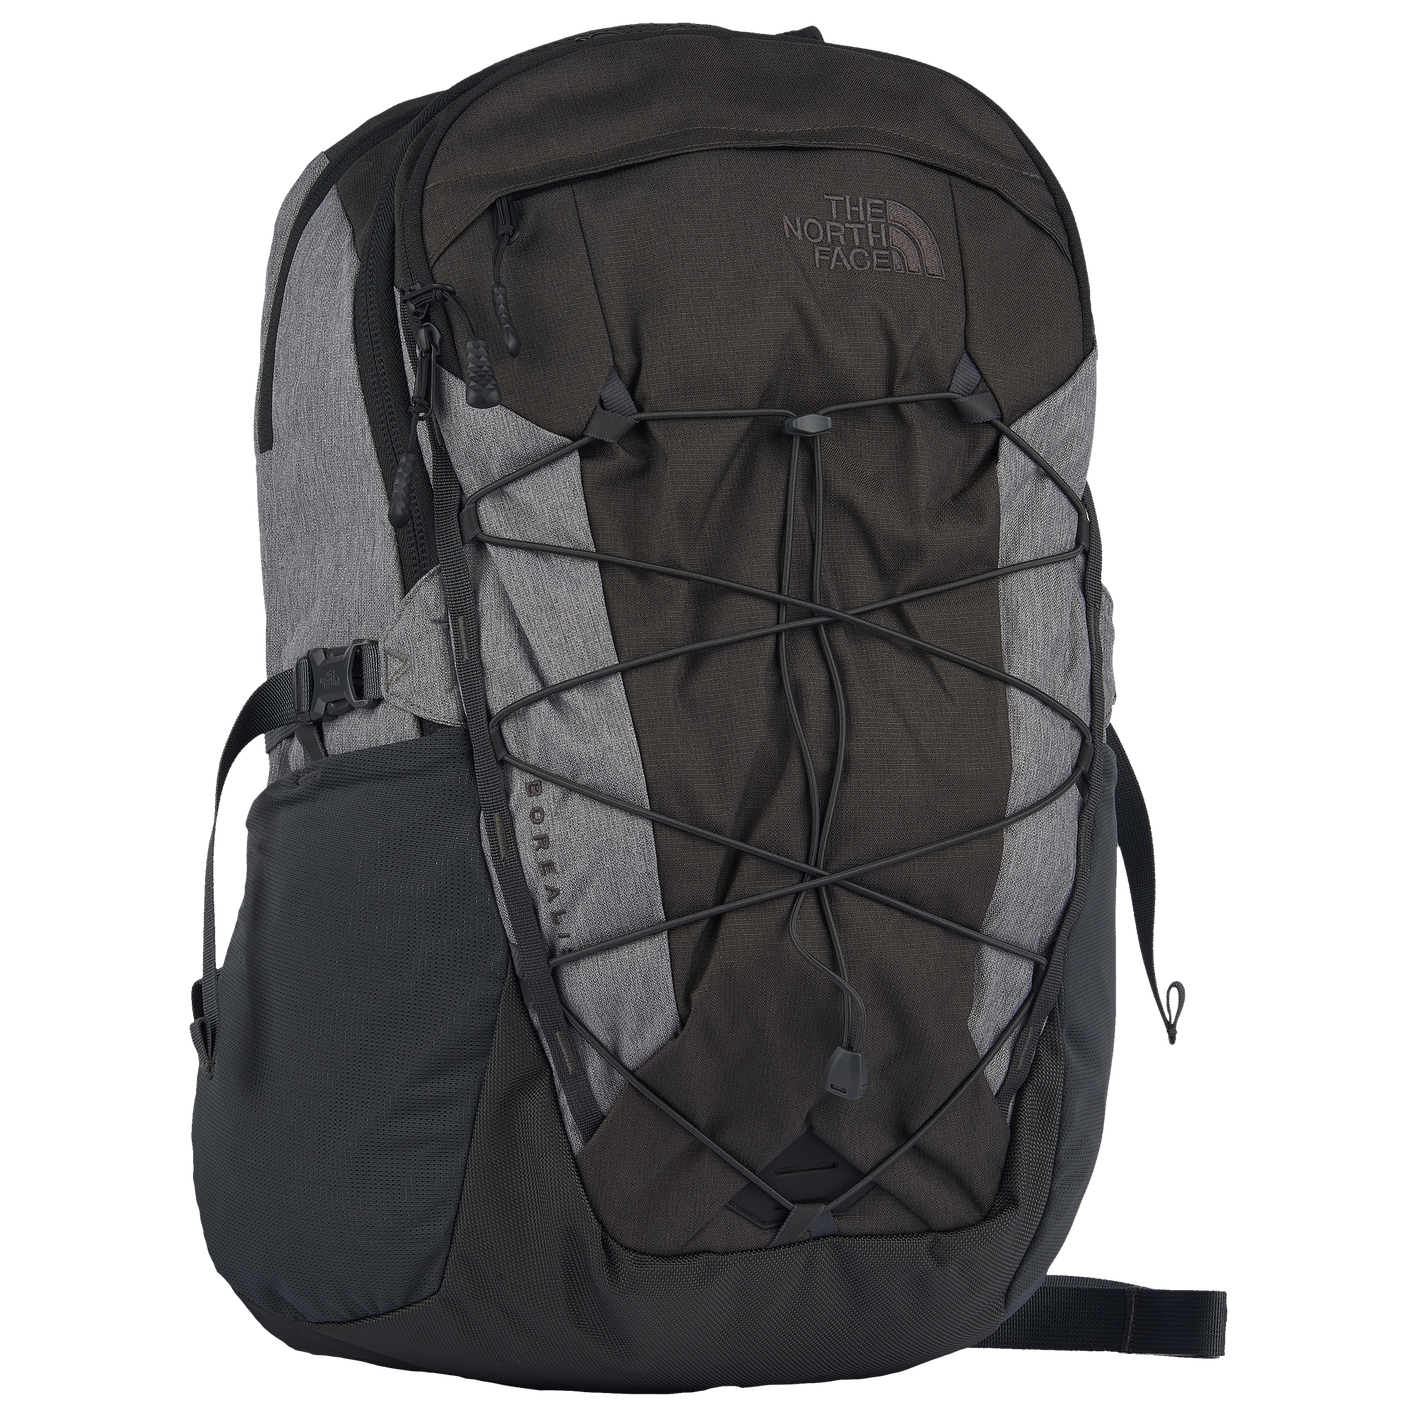 6b2a4a6dc40 The North Face Borealis Backpack - Casual - Accessories - Dark Grey ...